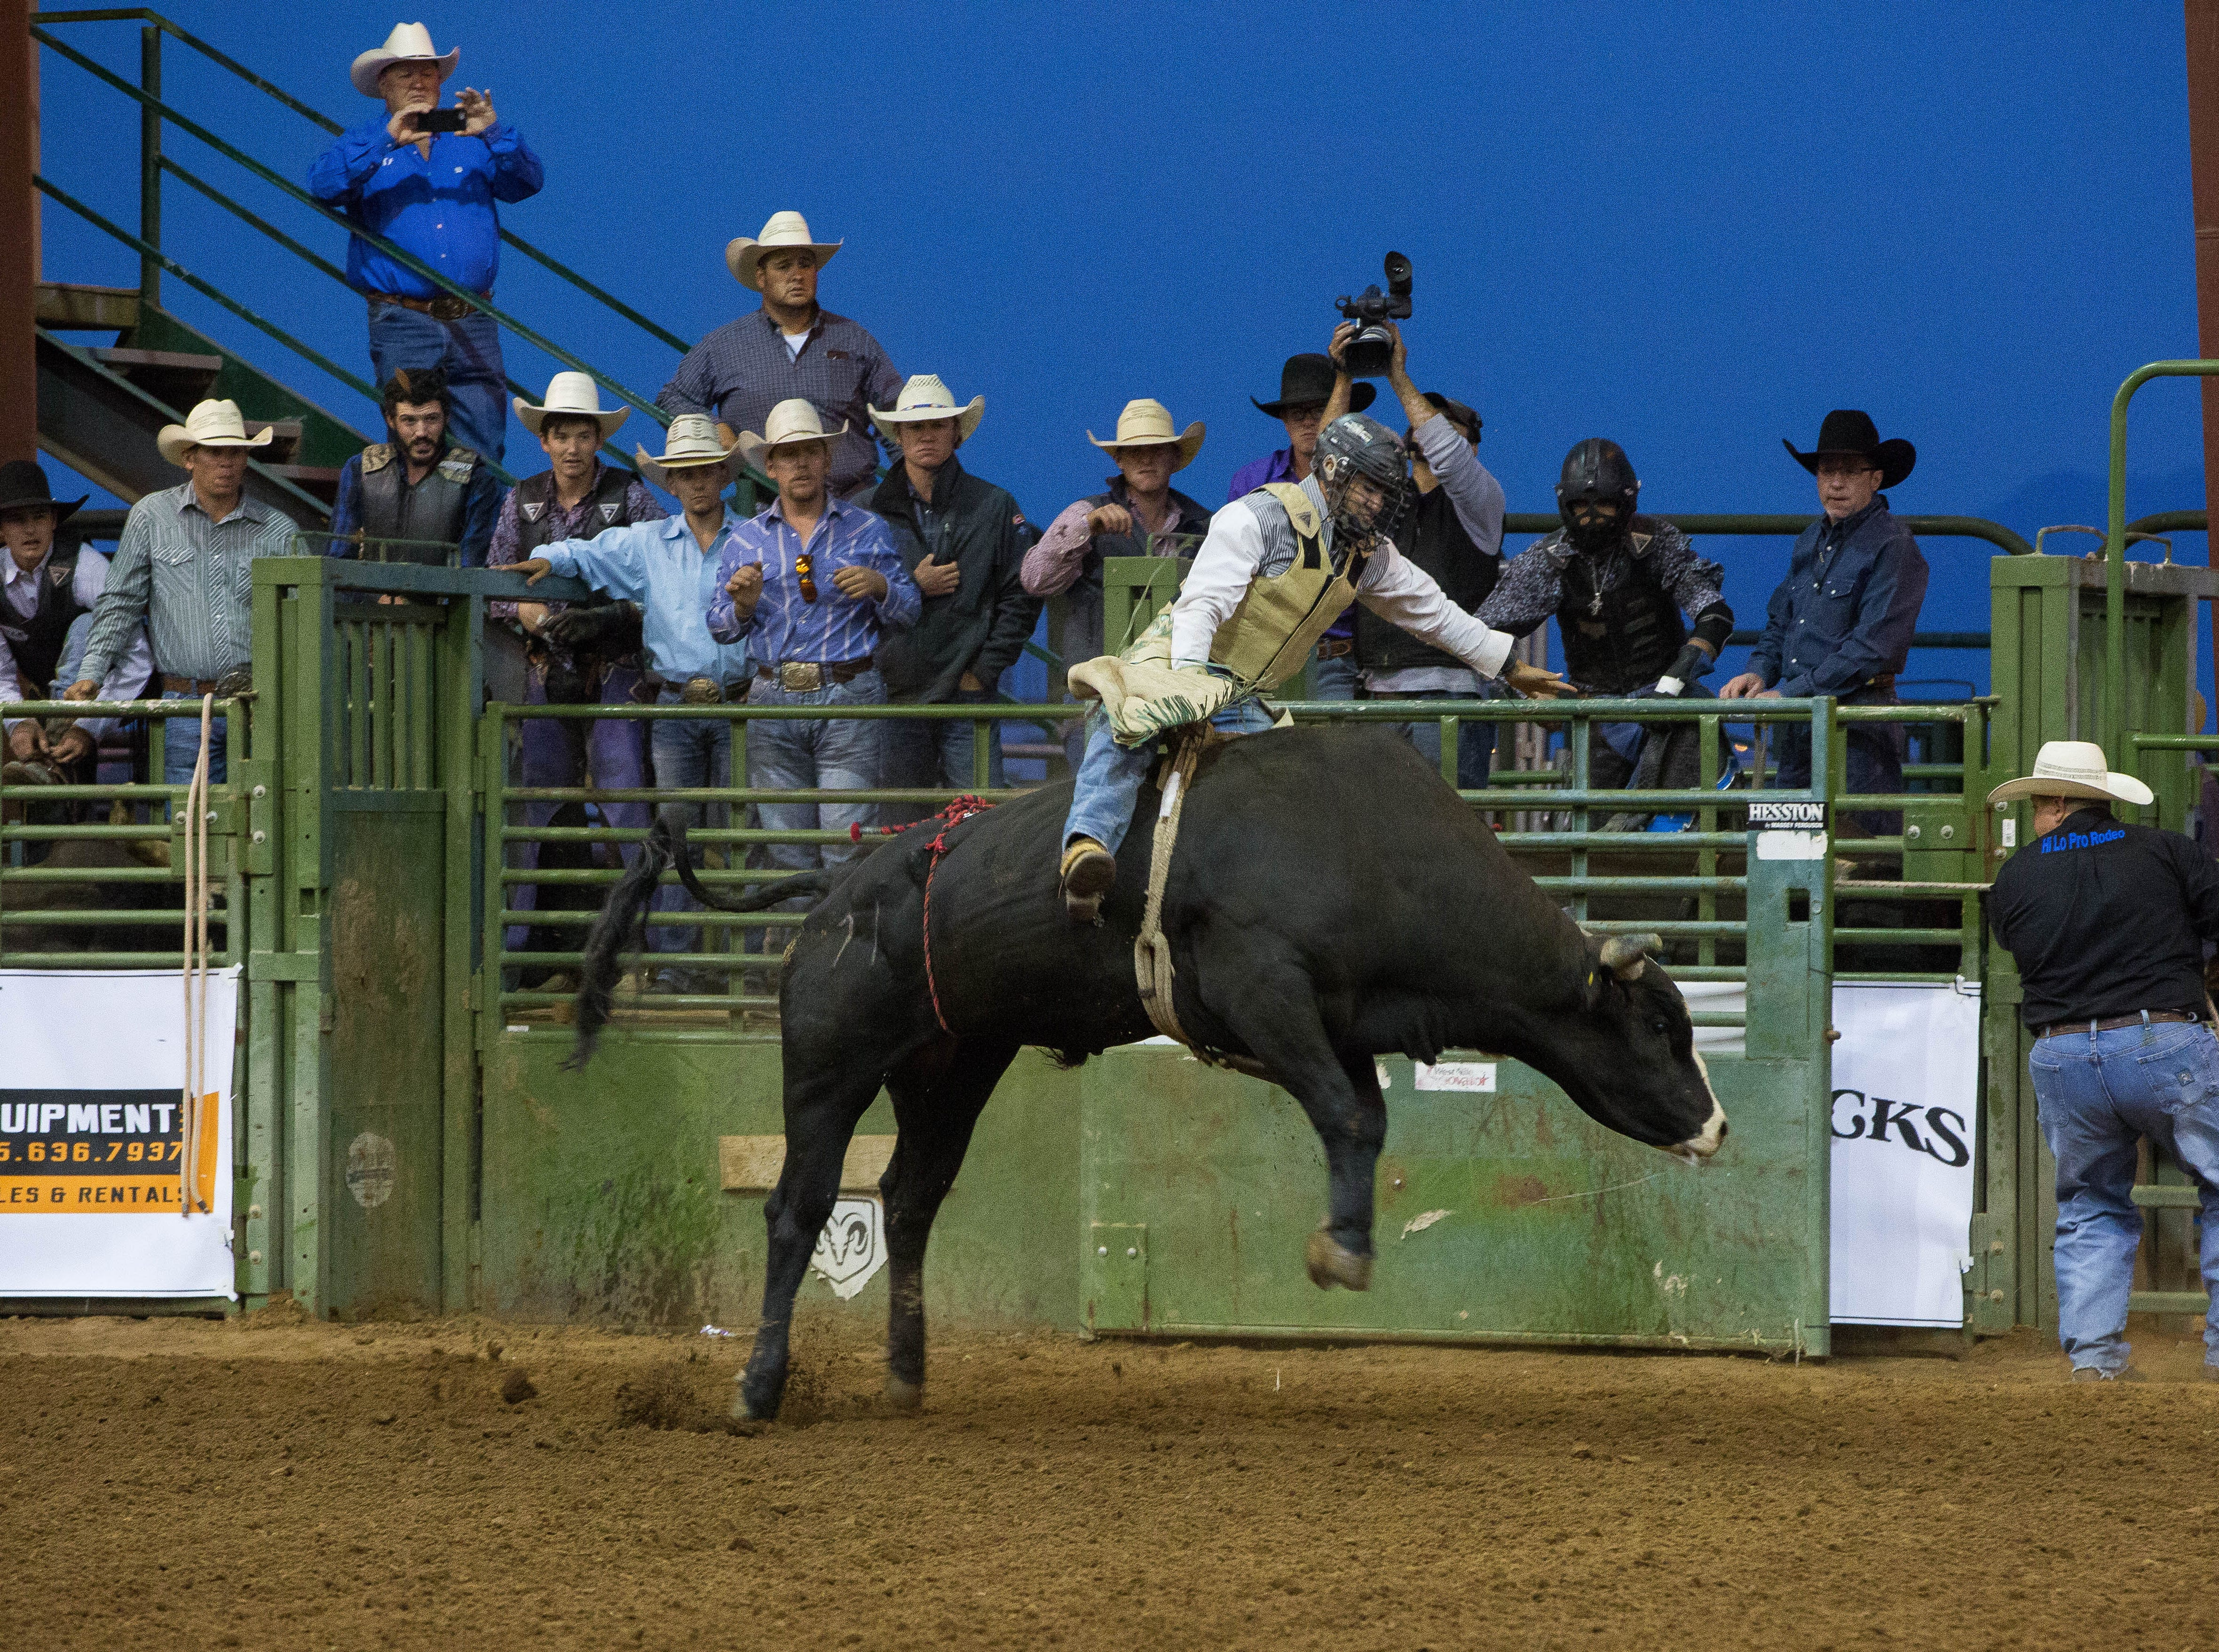 Dawson Stutting, the first rider in the Rumble on the Rio Bull riding contest, riding Spider Pig at the Southern New Mexico State Fair and Rodeo, Wednesday September 26, 2018.